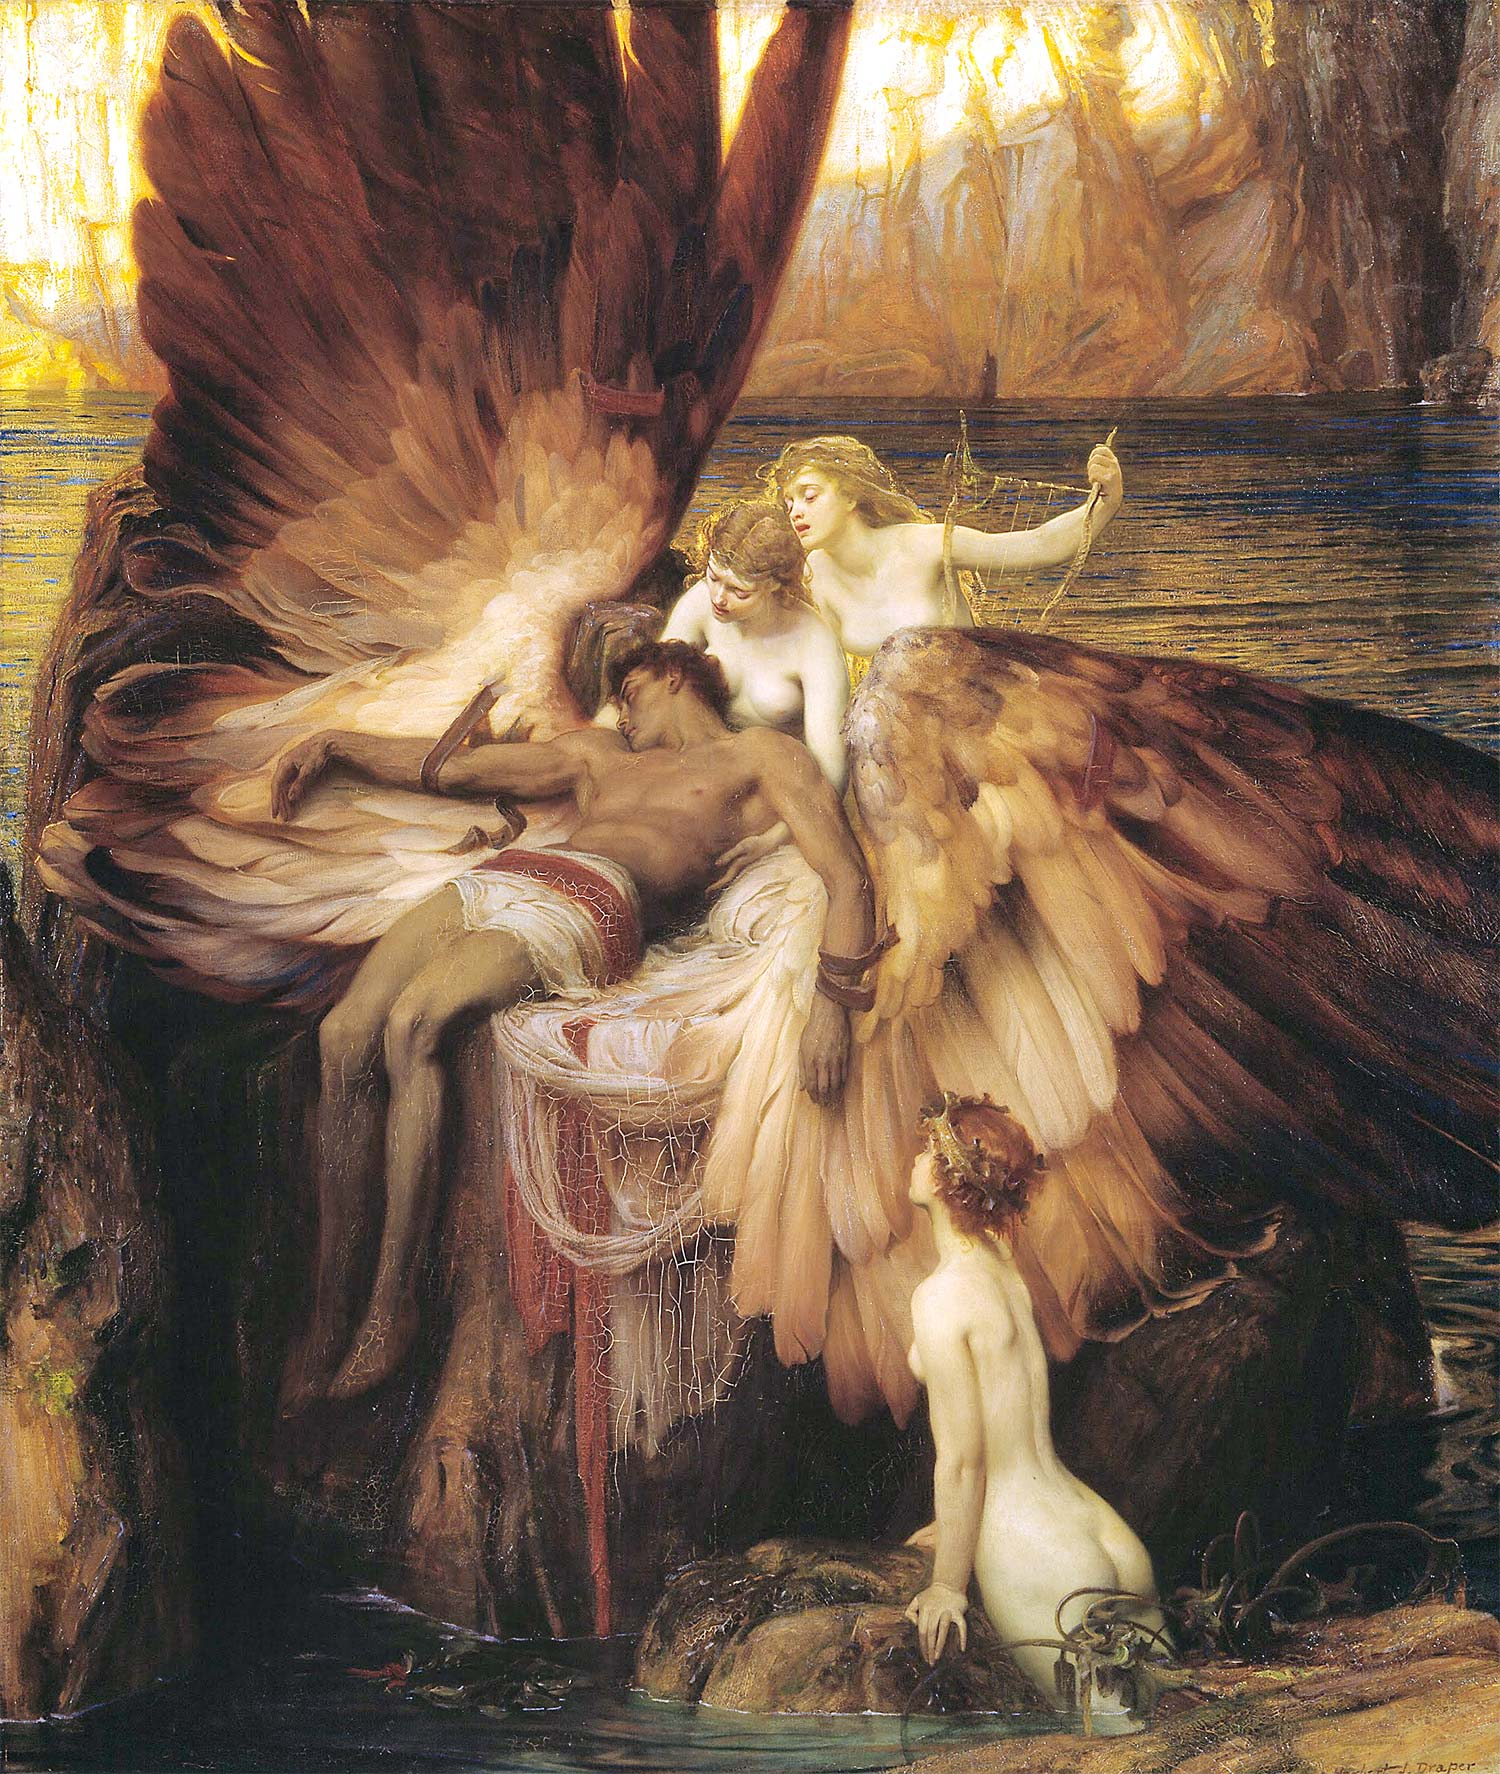 Lament for Icarus by Herbert Draper